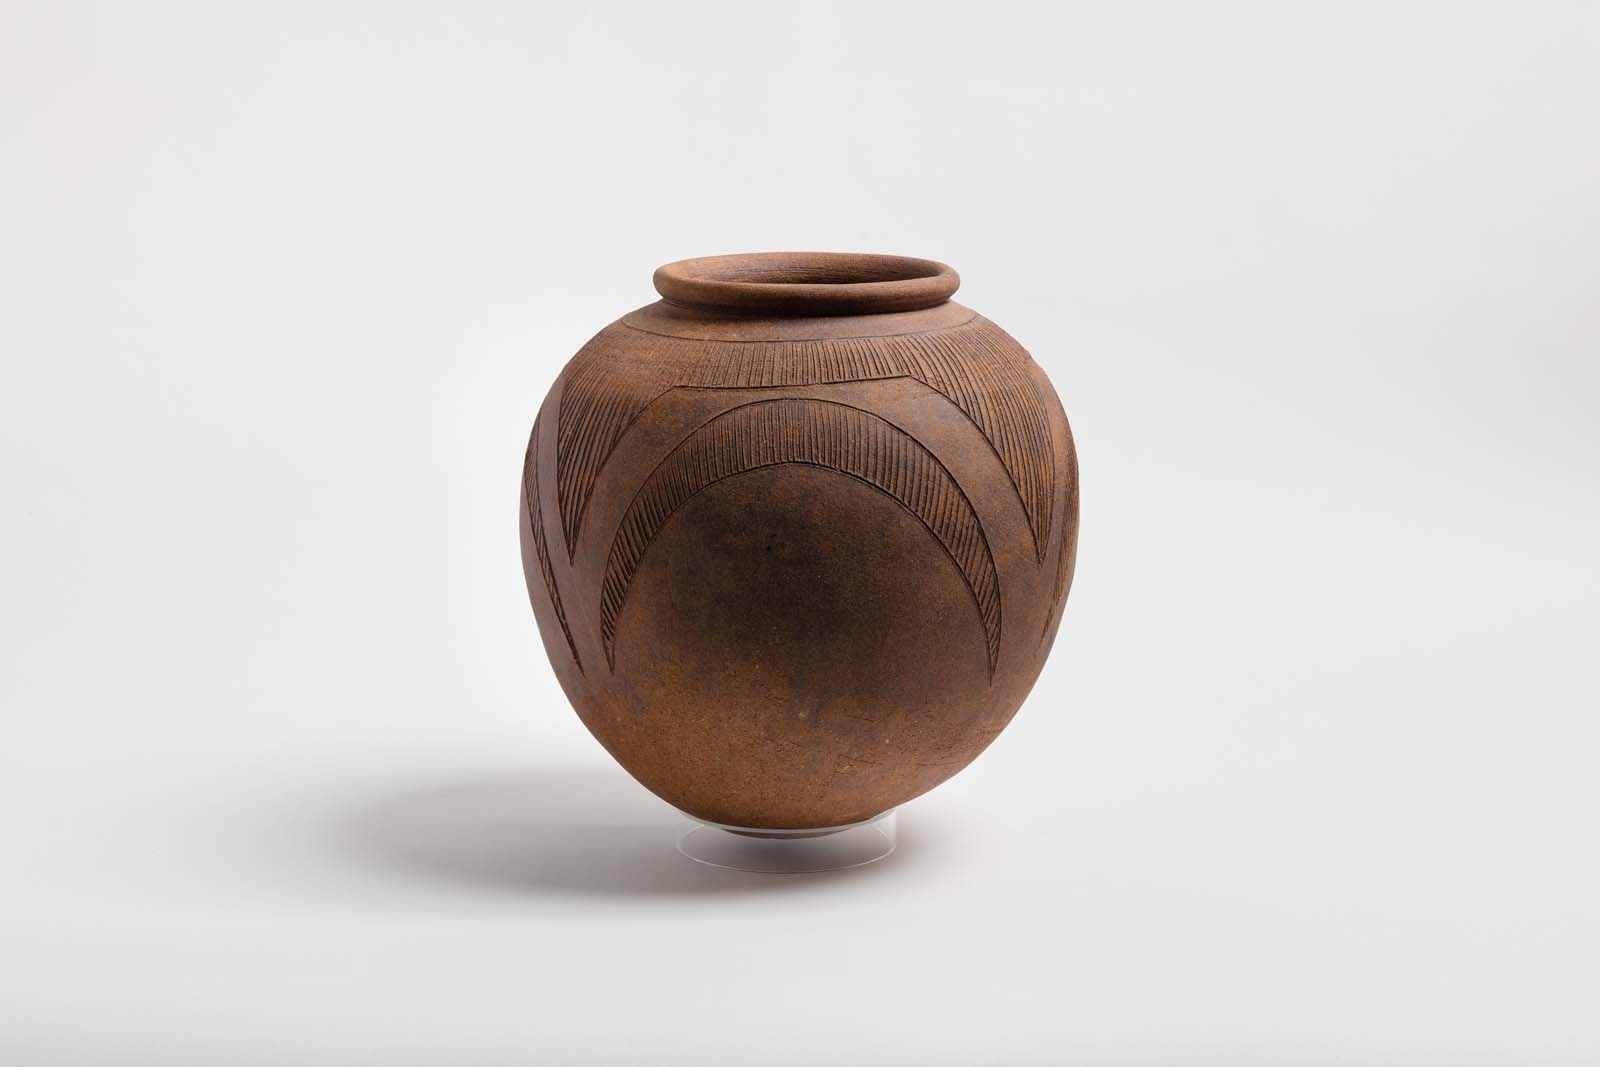 photo of a large terracotta pot with simple incised decoration